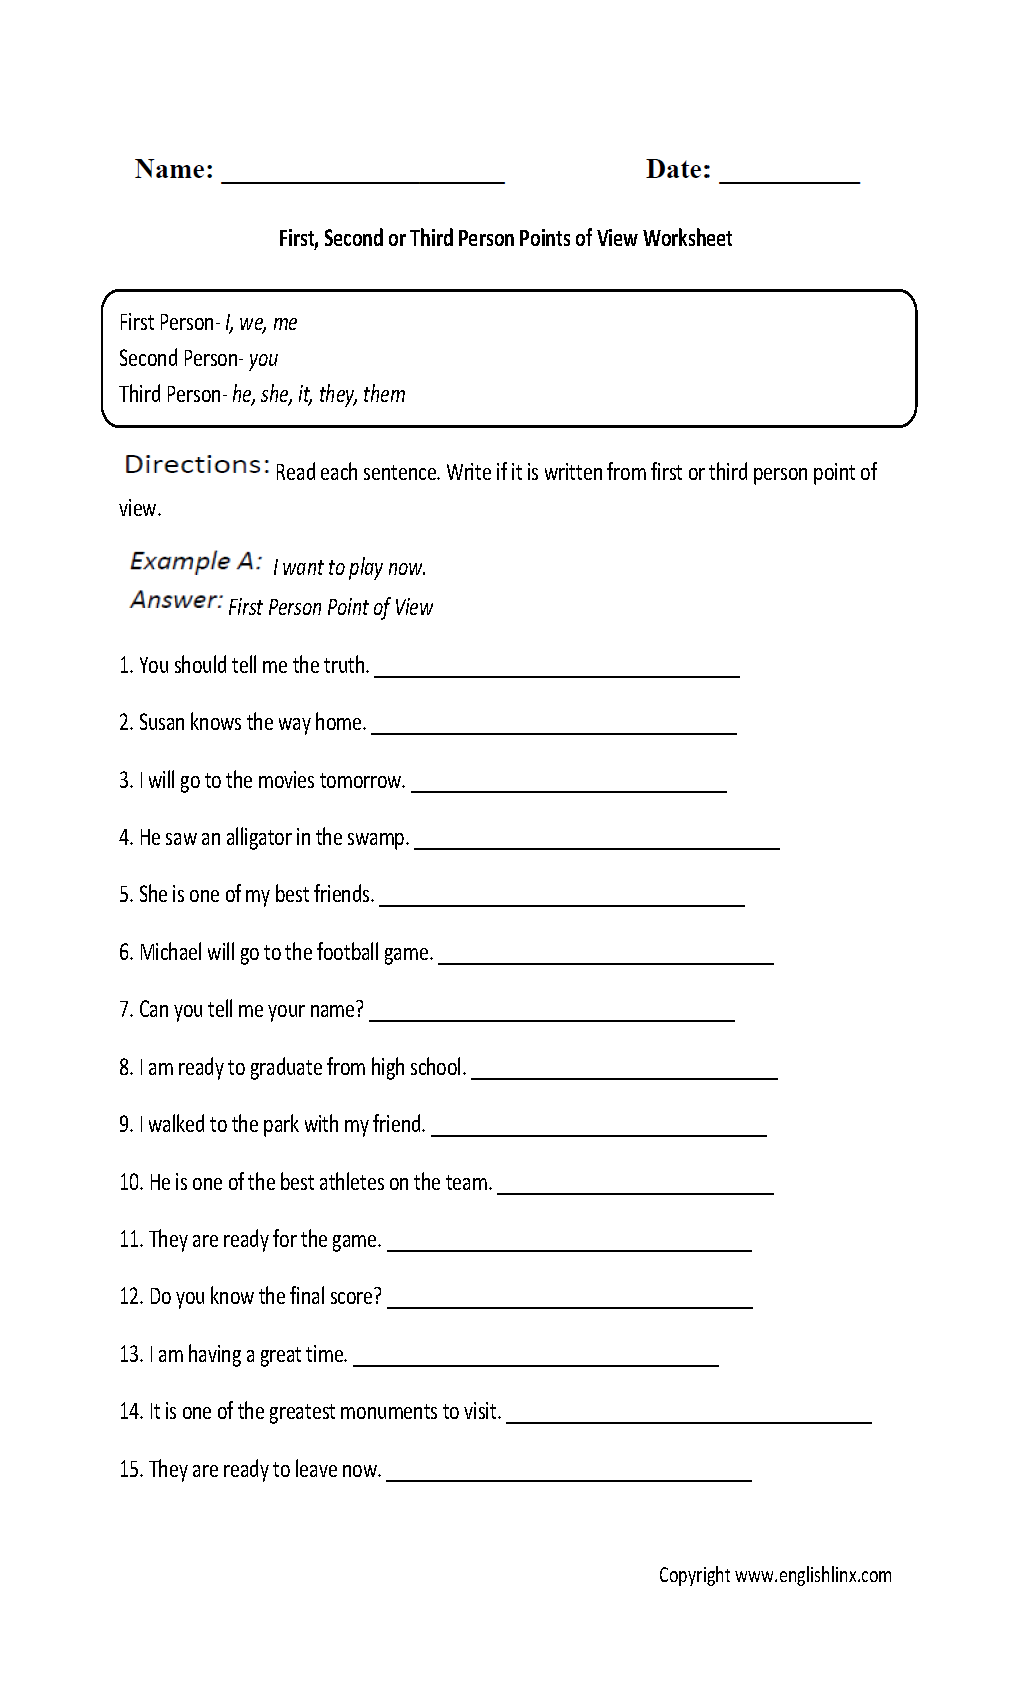 First, Second and Third Person Point of View Worksheet | Englishlinx ...